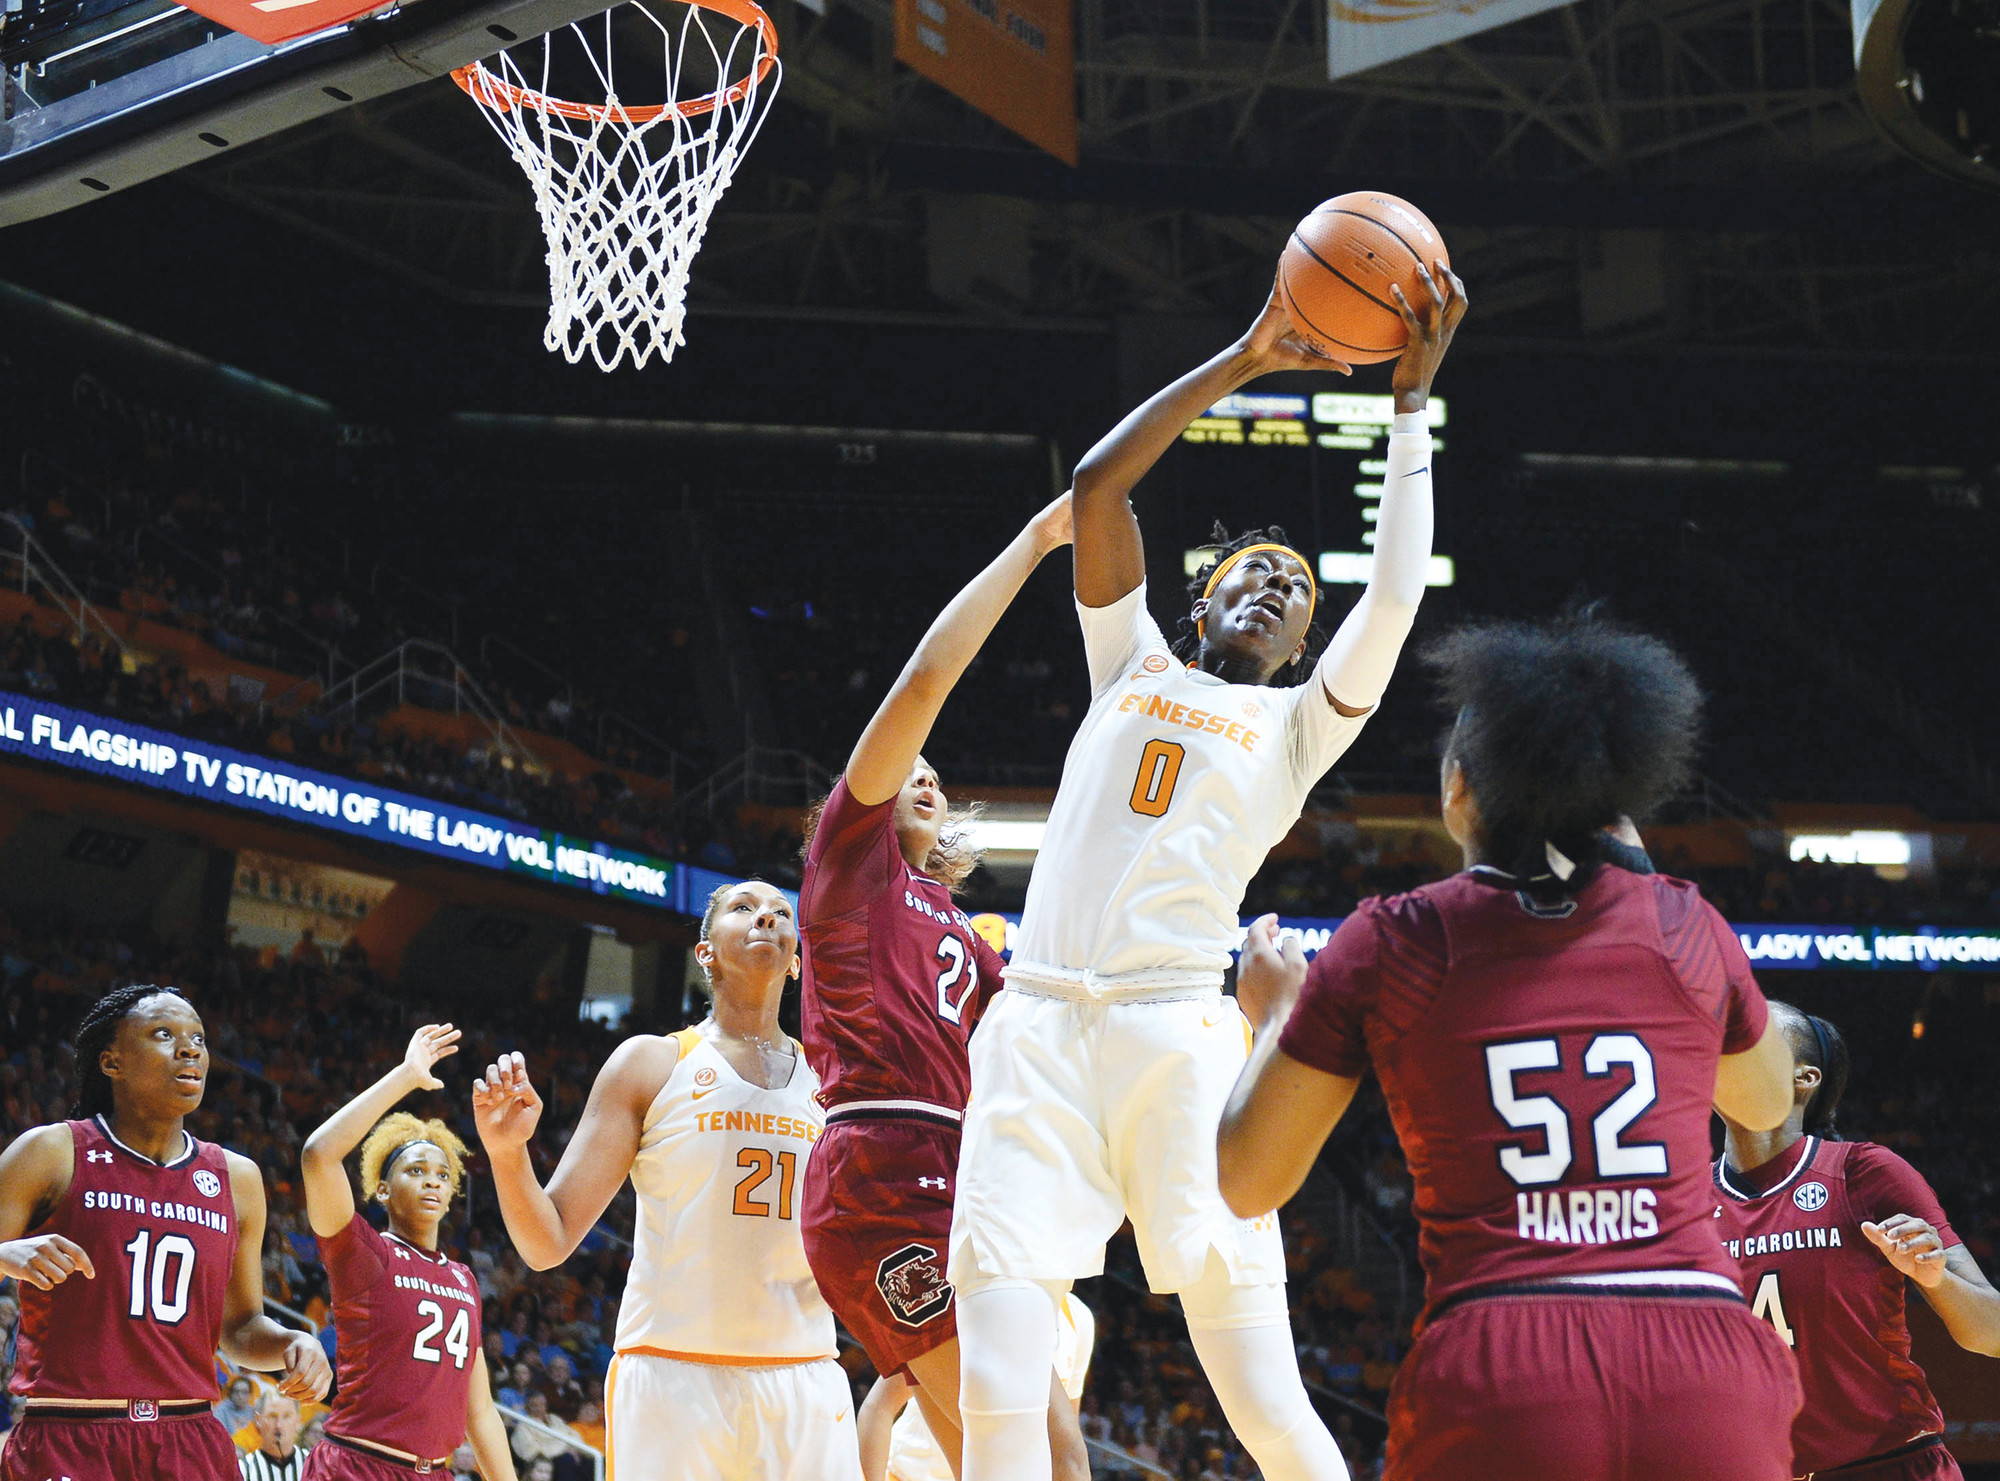 Joy Kimbrough / The Daily Times via APTennessee's Rennia Davis (0) pulls down a rebound during the Lady Volunteers' 65-46 victory over South Carolina on Sunday in Knoxville, Tennessee.